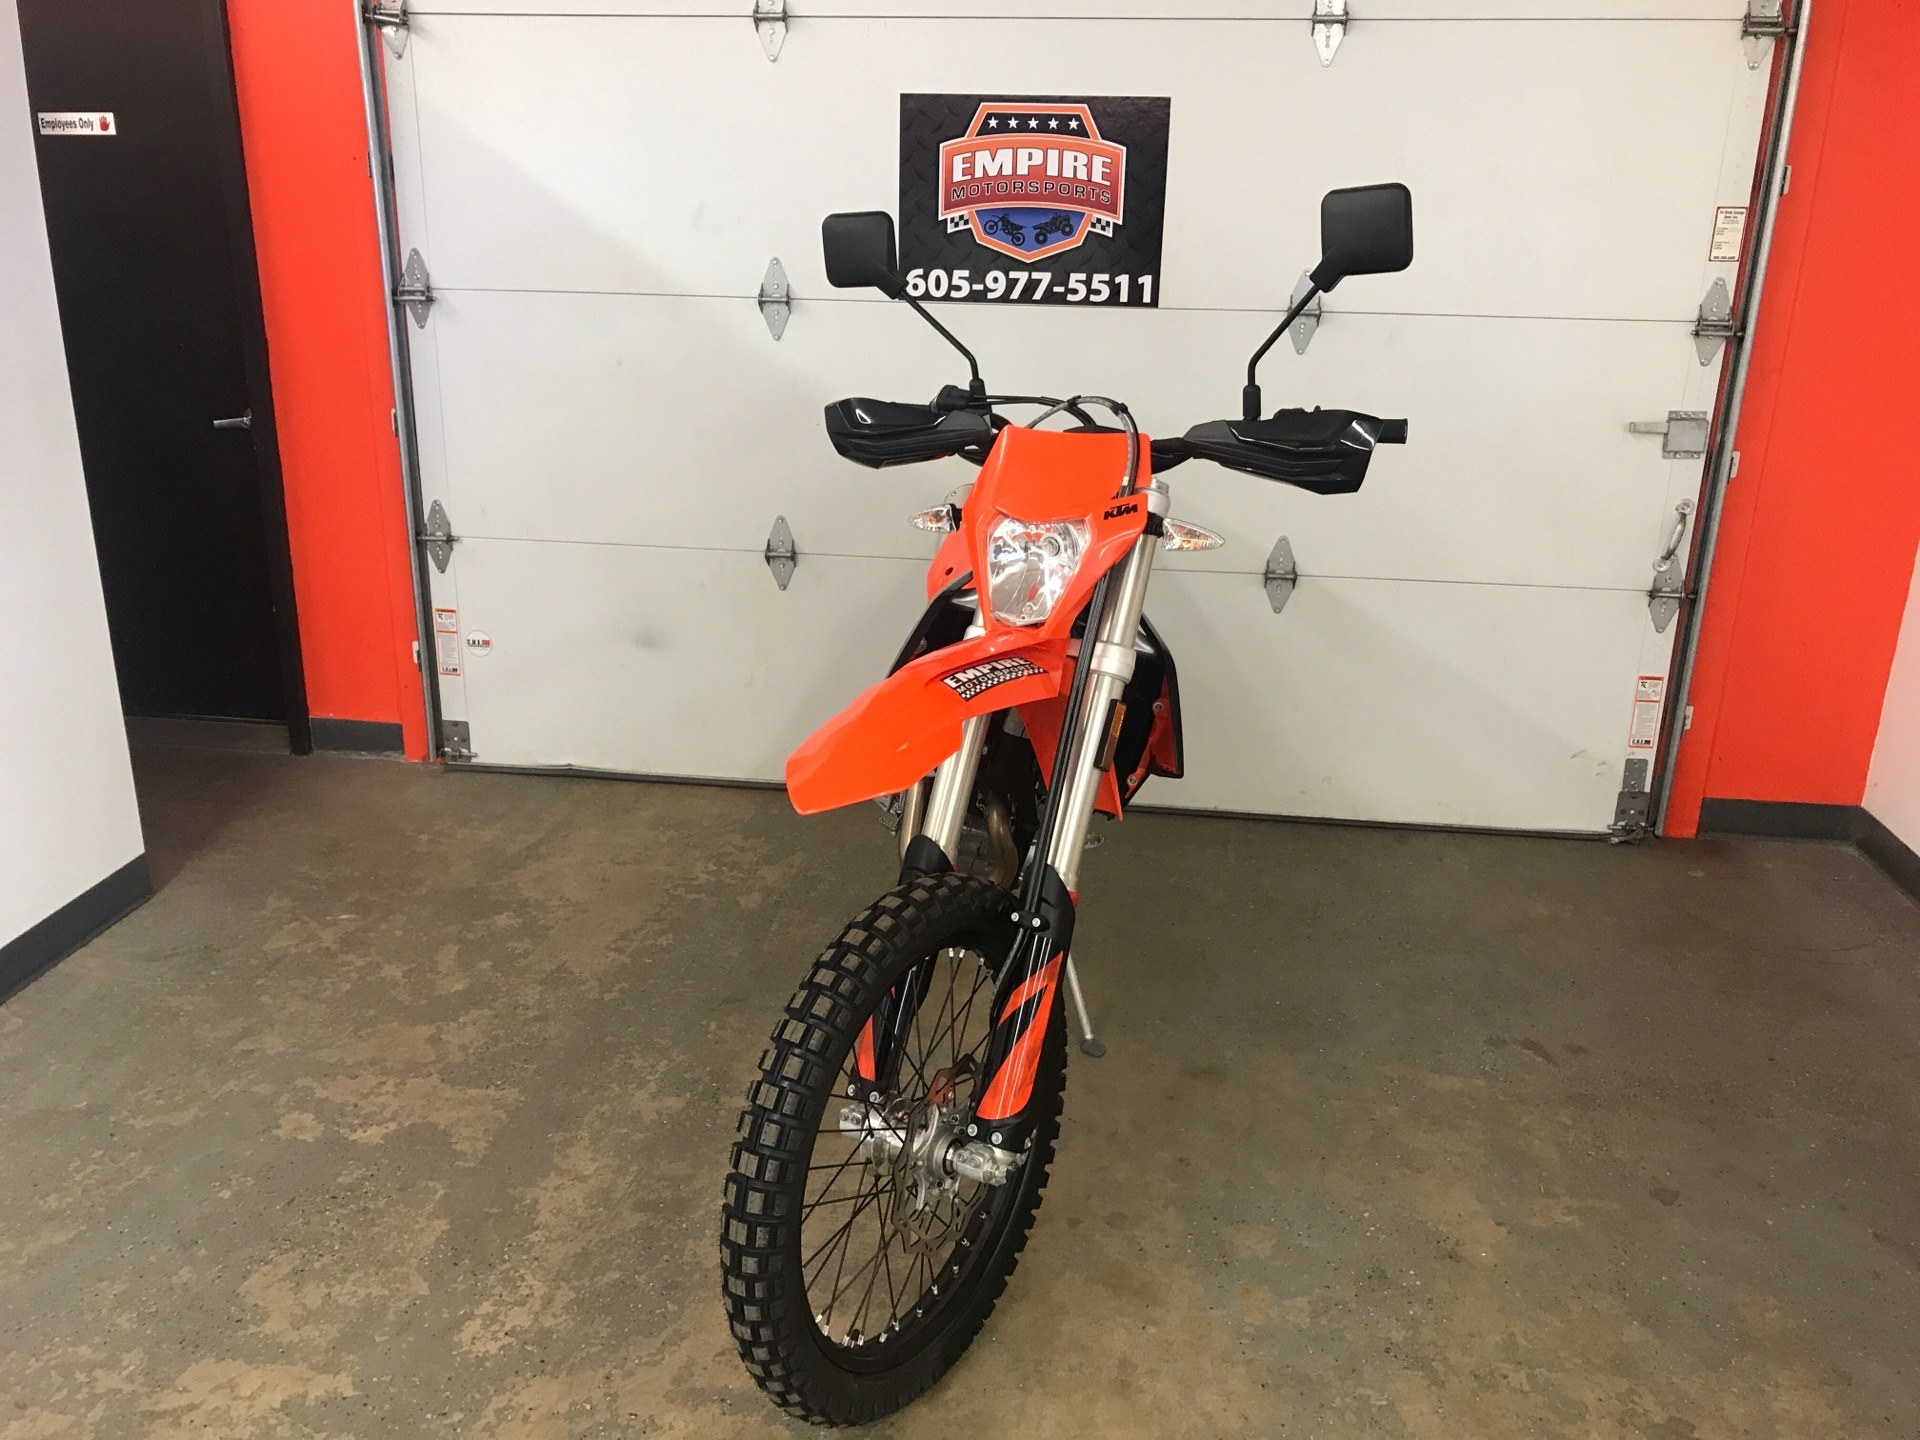 2020 KTM 350EXCF in Sioux Falls, South Dakota - Photo 2